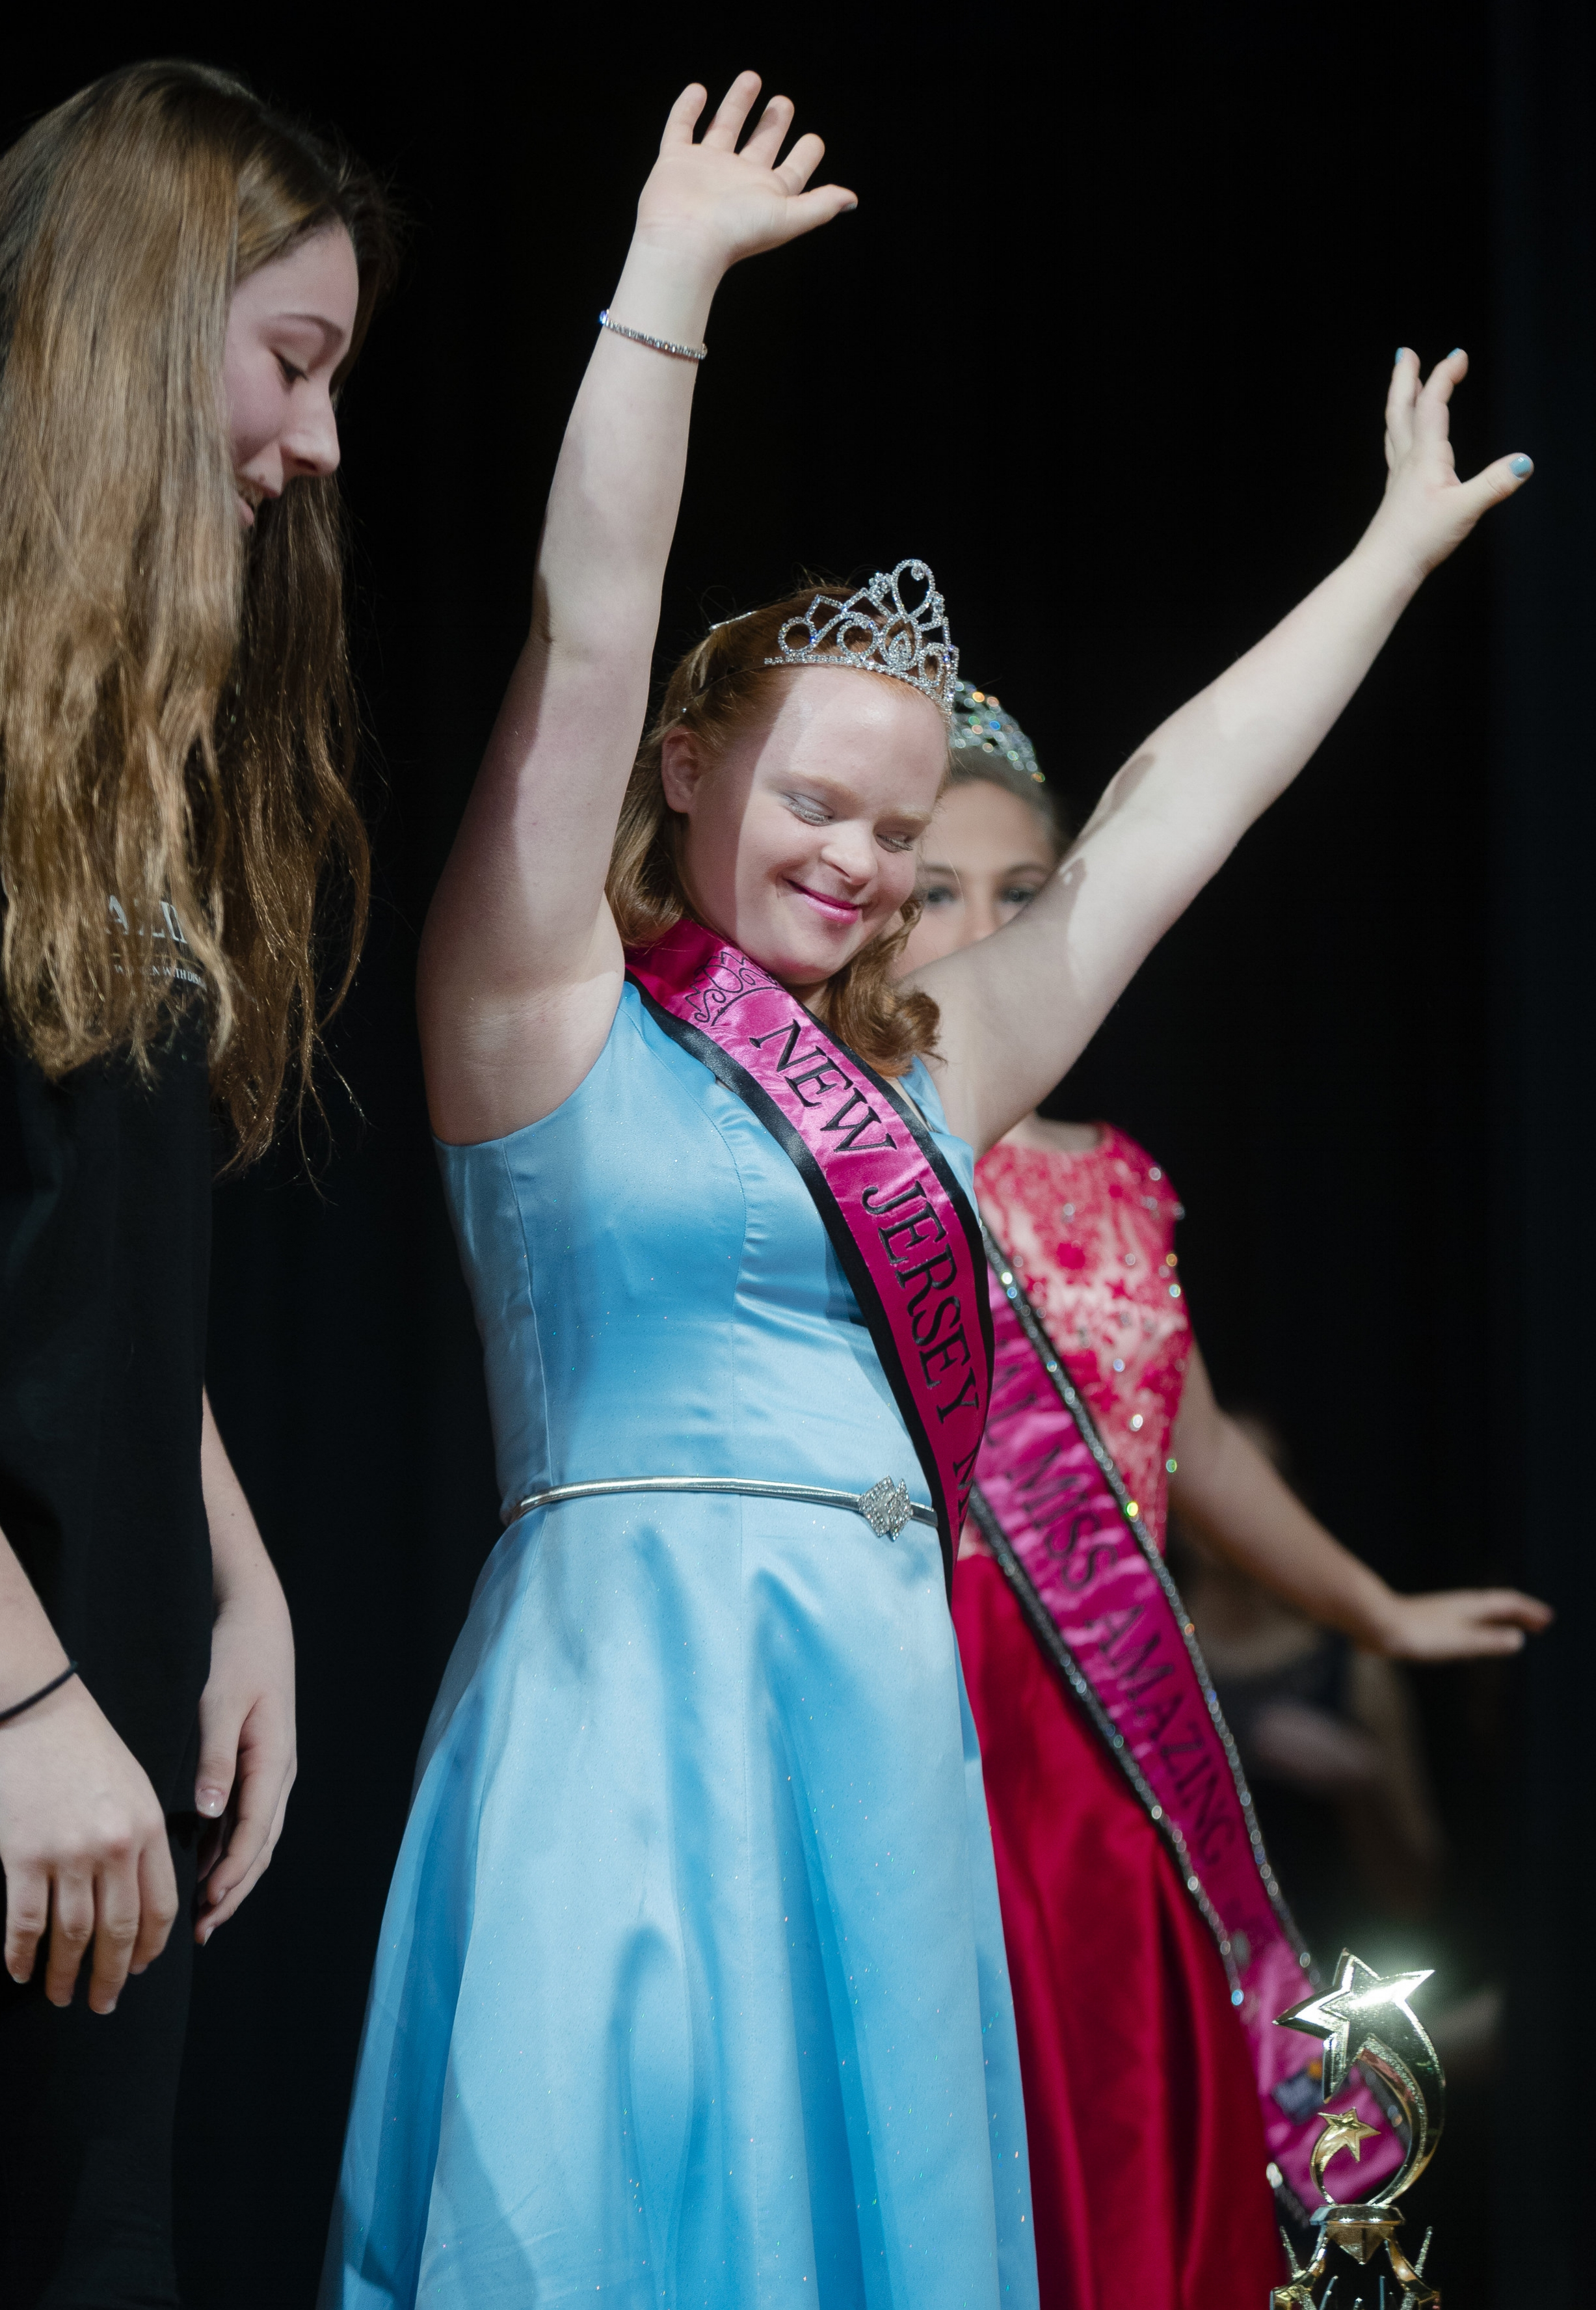 New Jersey Miss Amazing Teen | Ireland Kosco    Click to read more about Ireland!